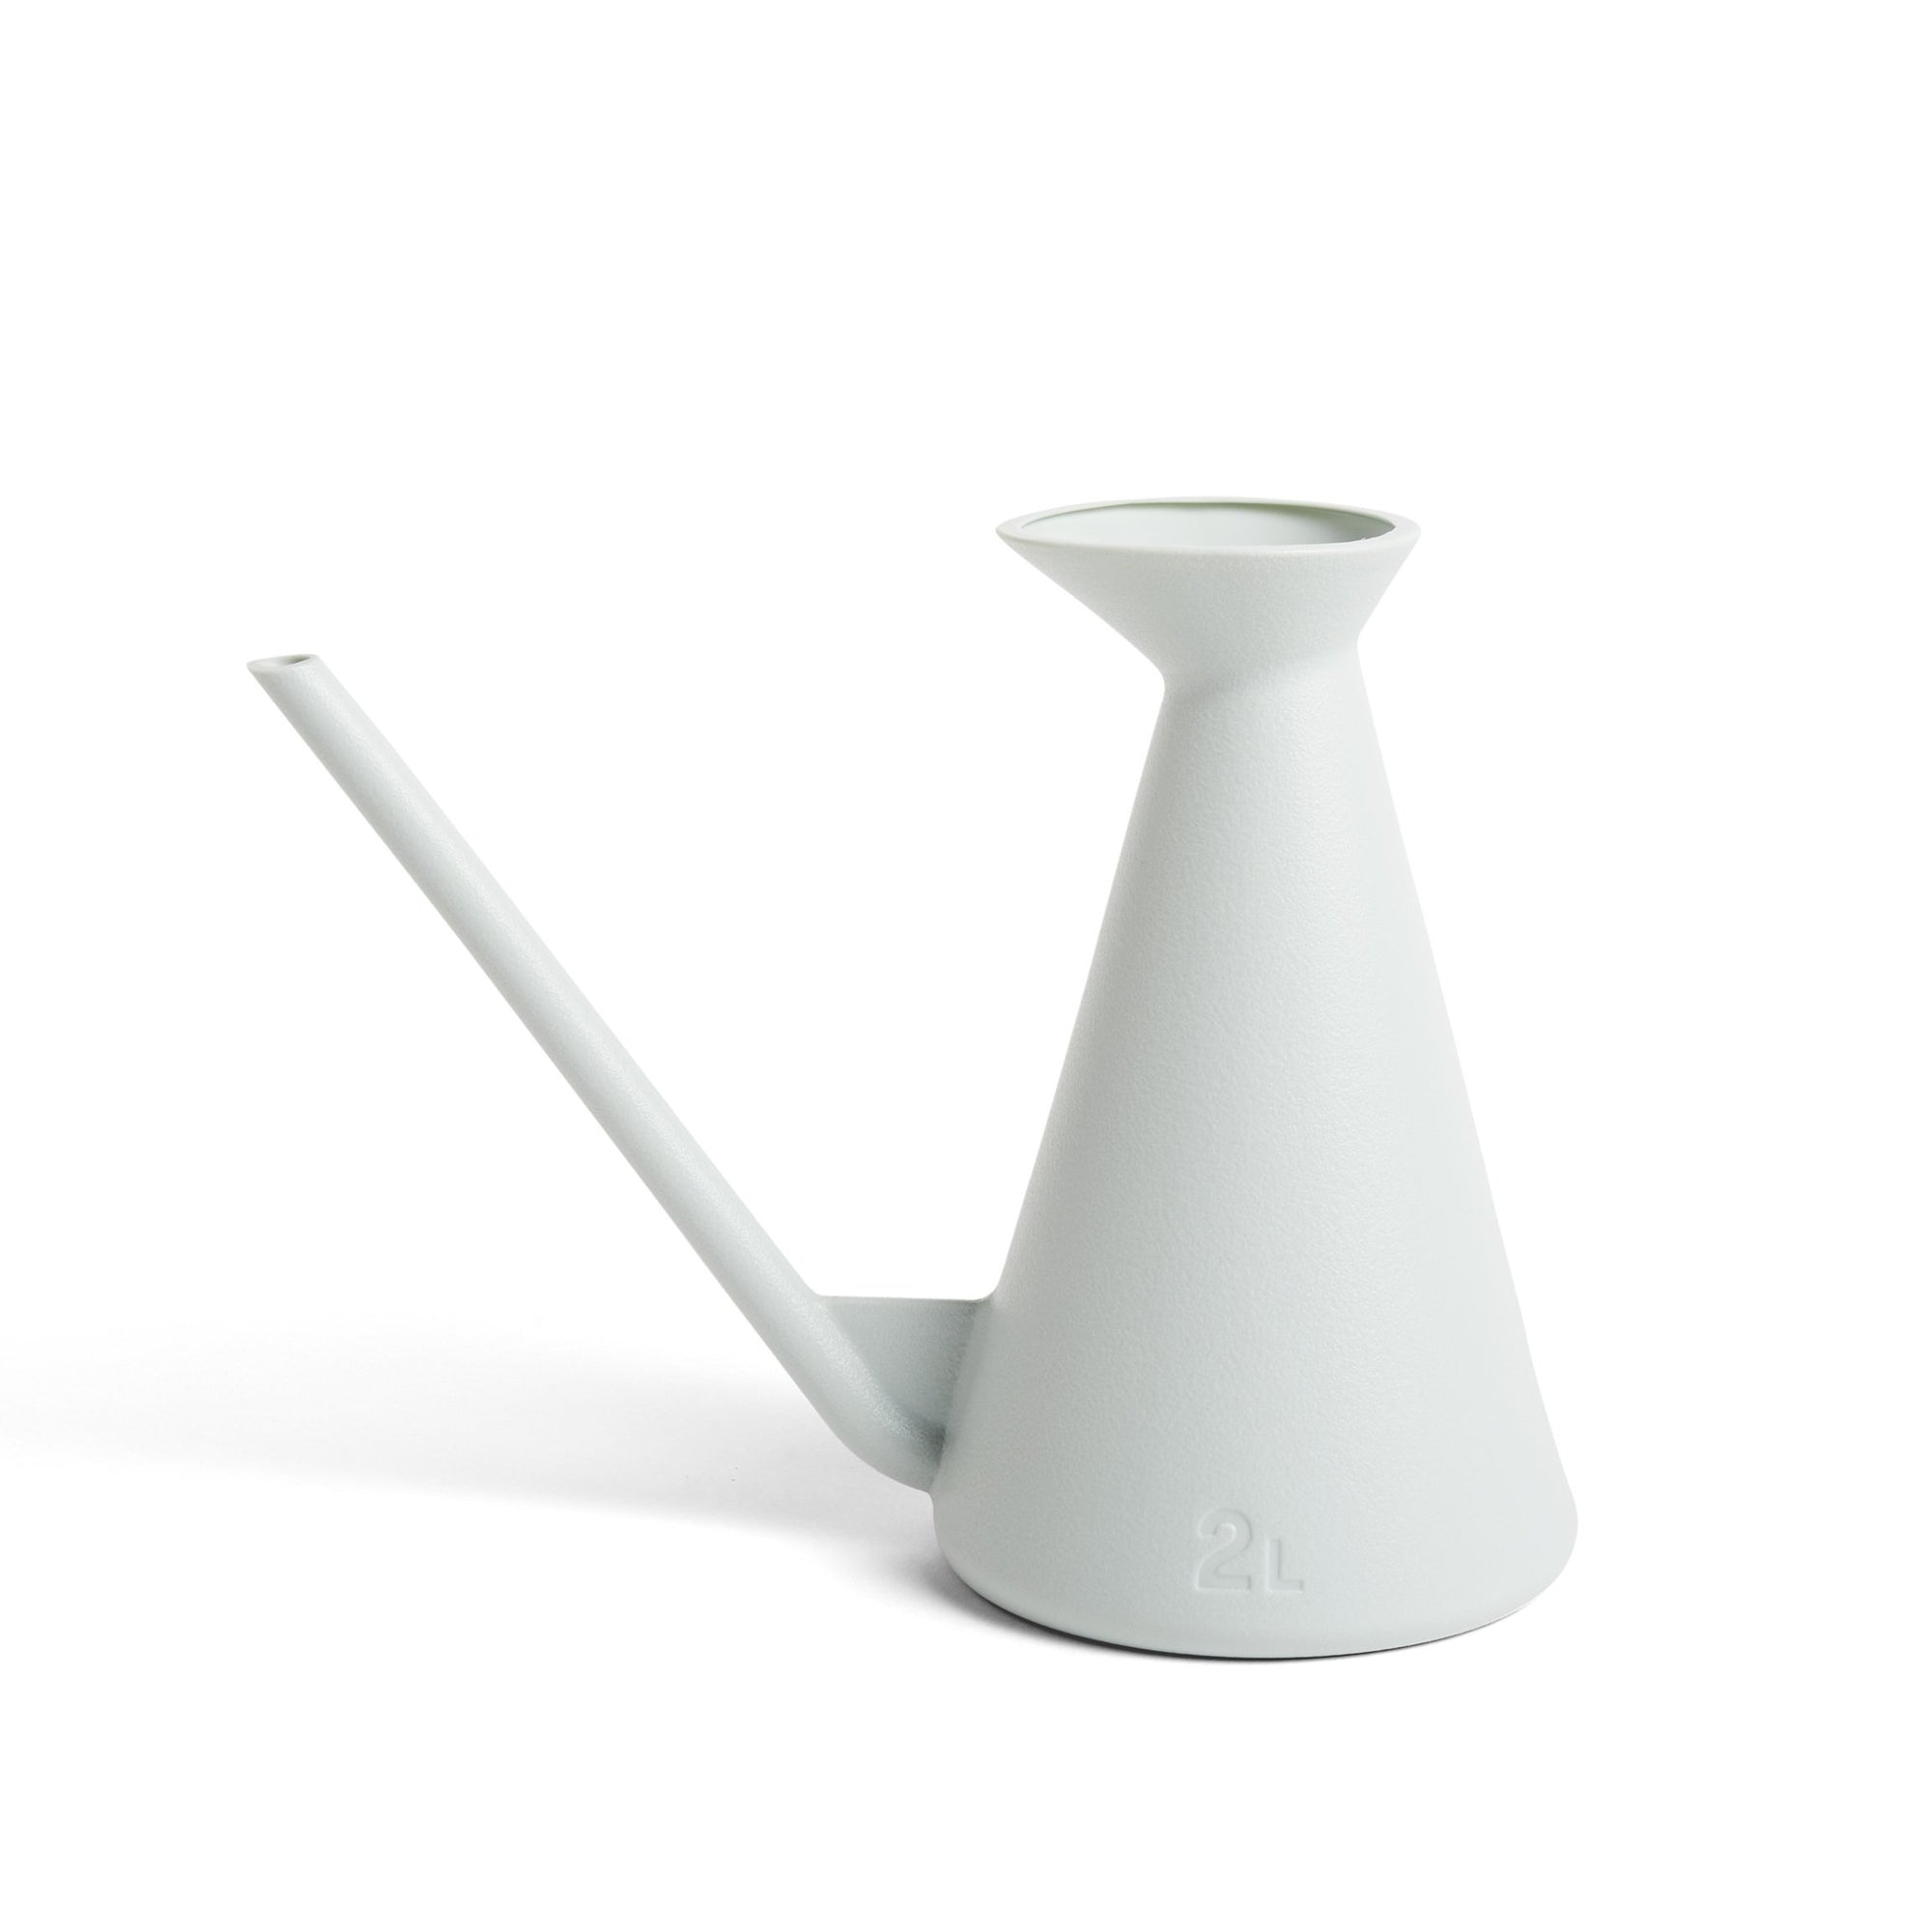 Hay Watering Can: Light Grey - The Union Project